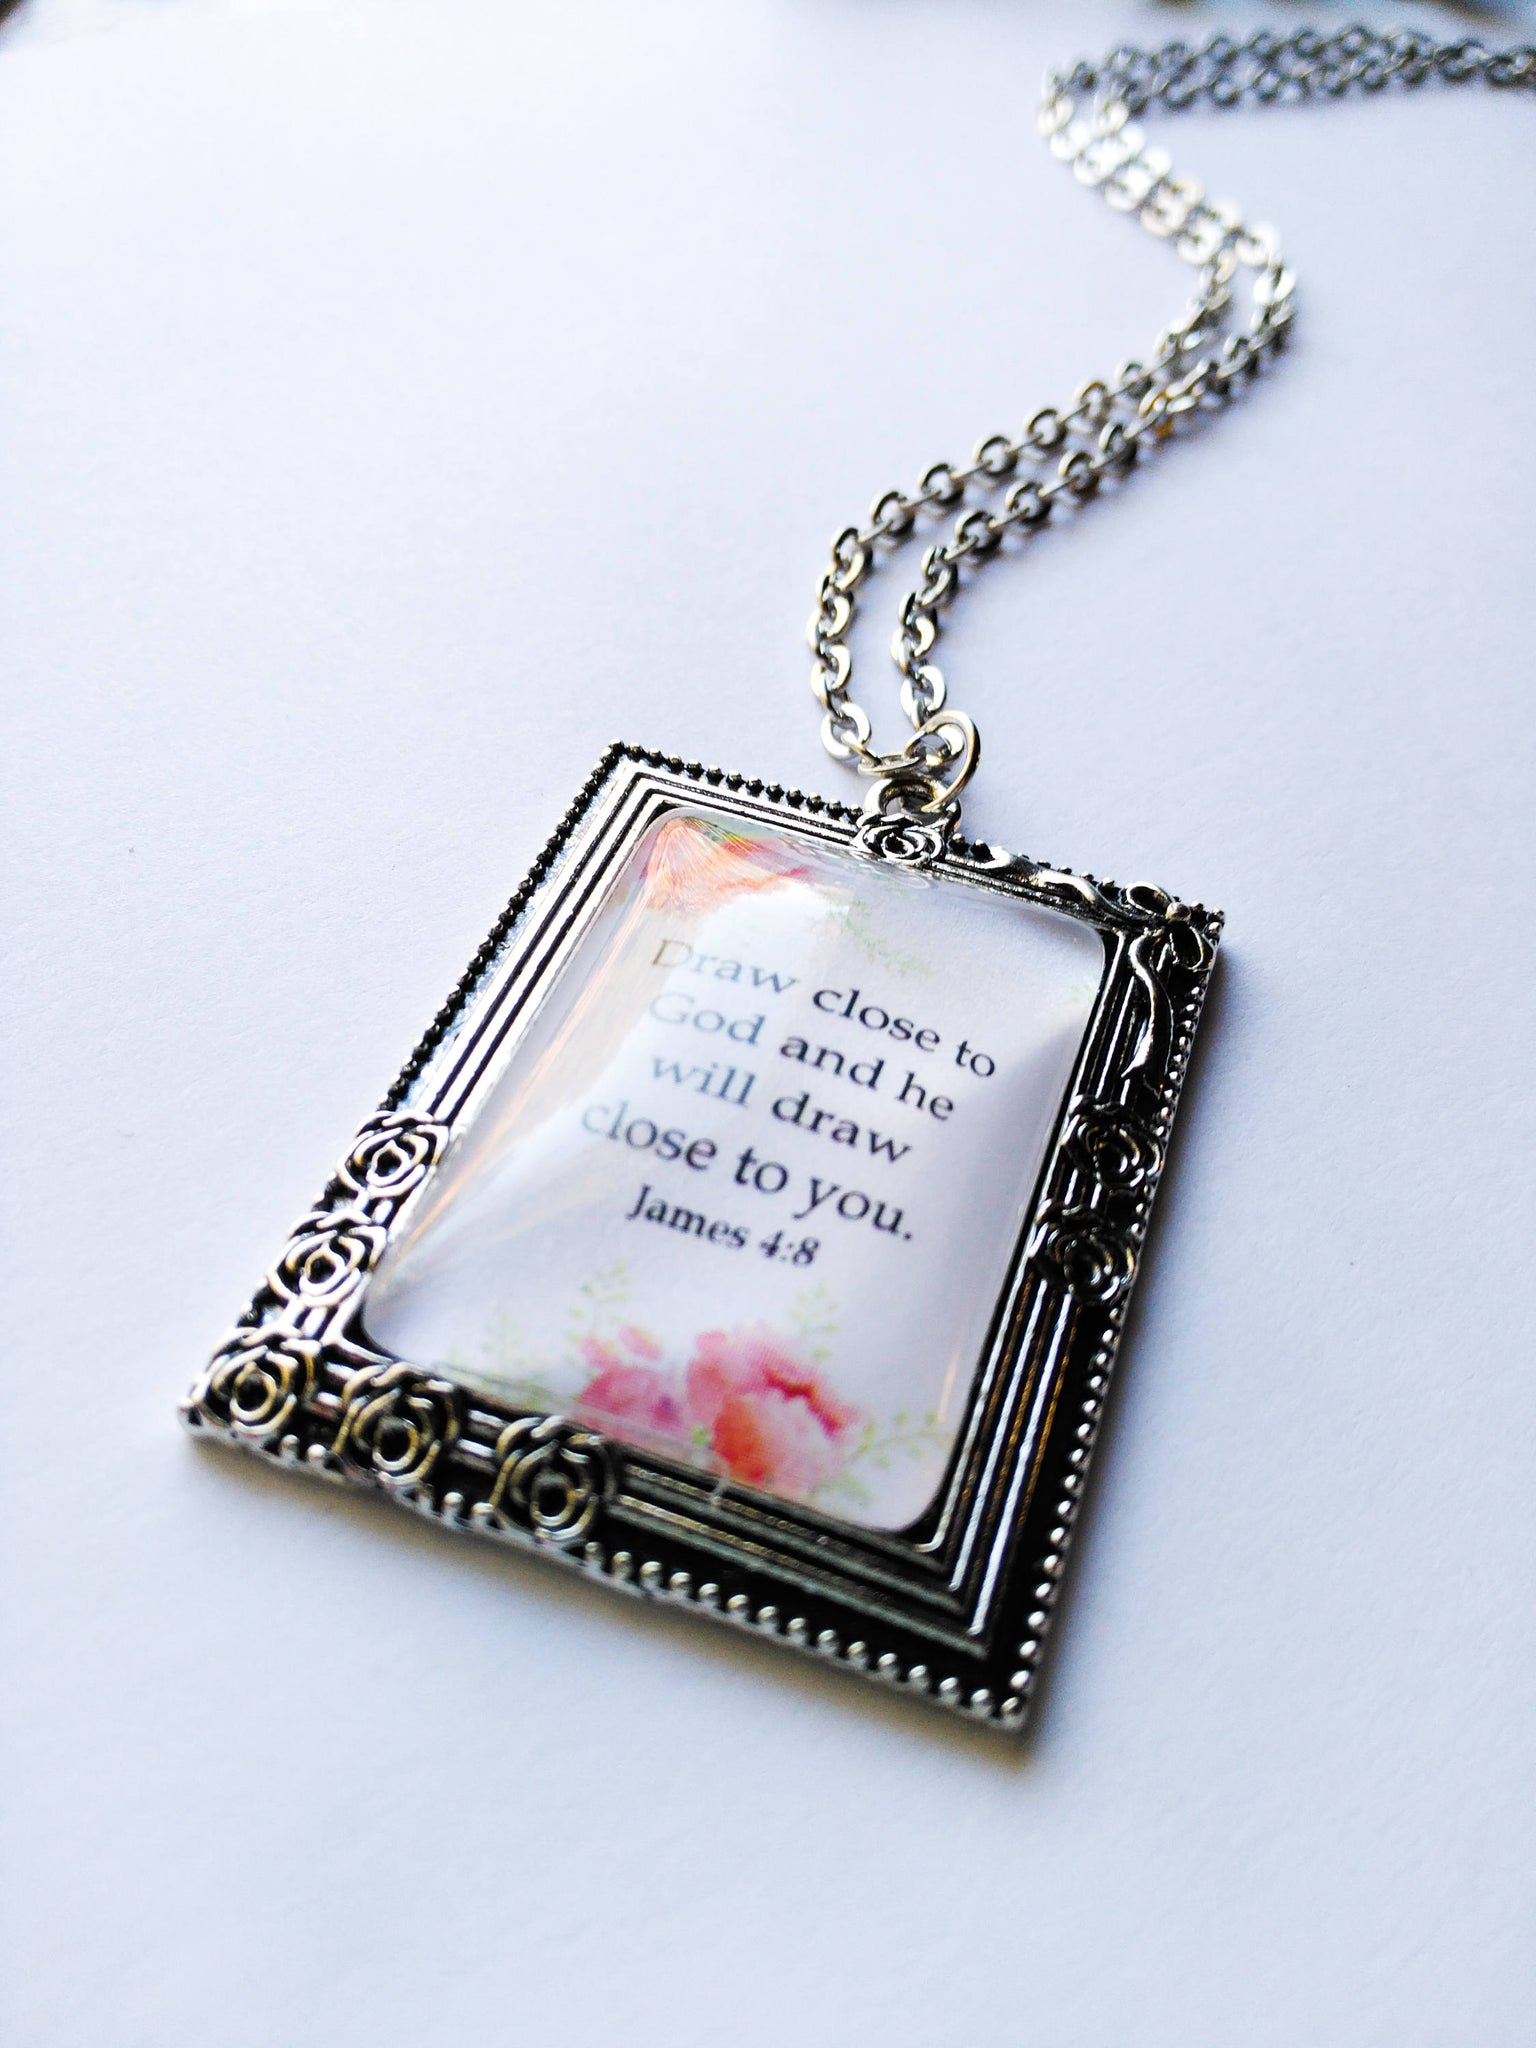 Draw Close To God Pink Rose Border Pendant with Chain, Antique Silver Victorian, James 4:8, JW.org, JW gifts, Baptism Gift